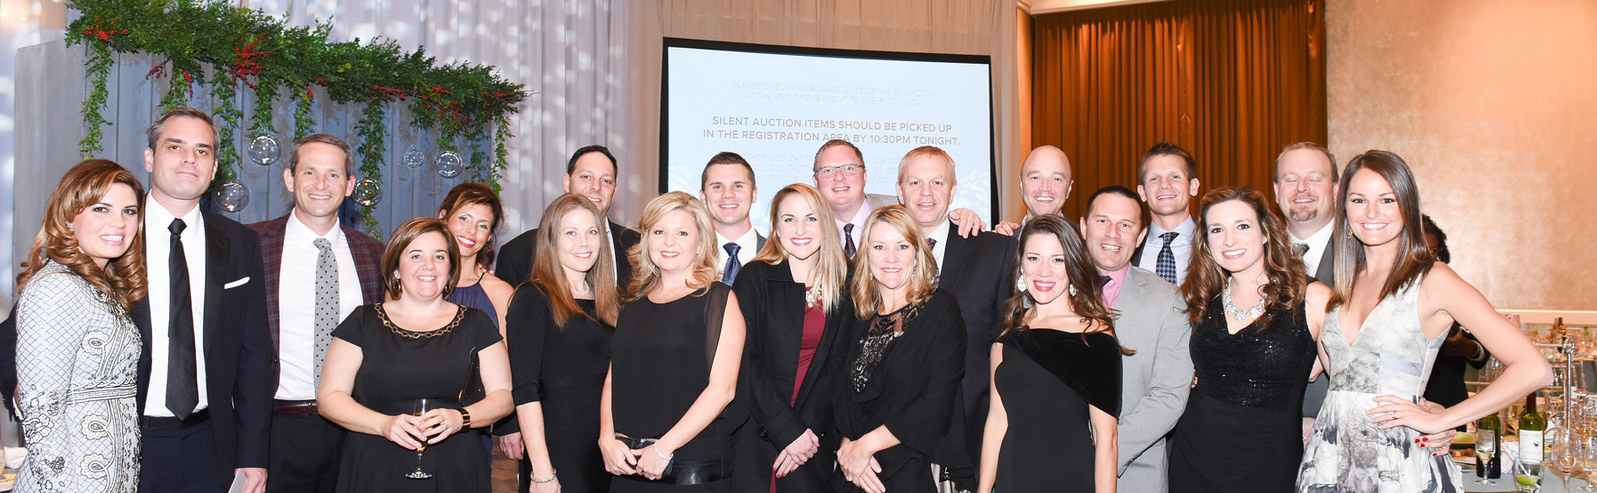 The team at Pratt Industries' Specialty Division enjoyed an evening of fundraising for the Captain Planet Foundation, hosted by president of the division, Chris Stanton (third from right),